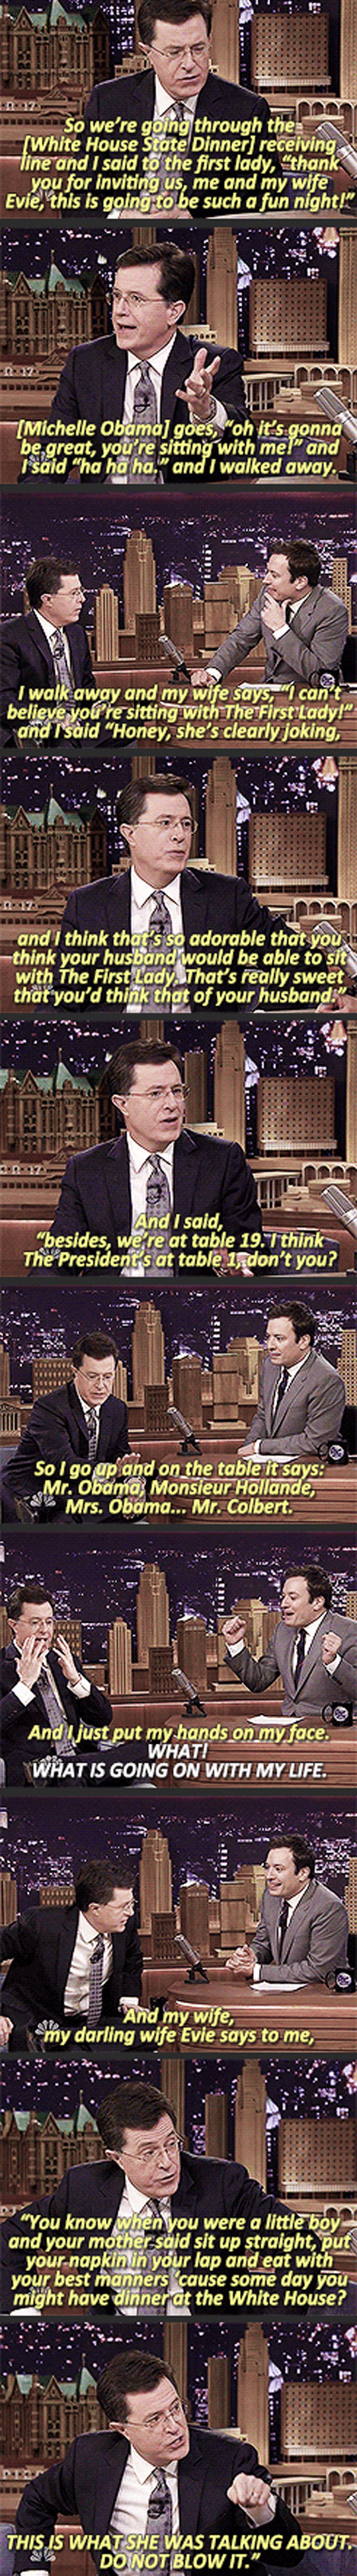 Stephen Colbert And The First Lady